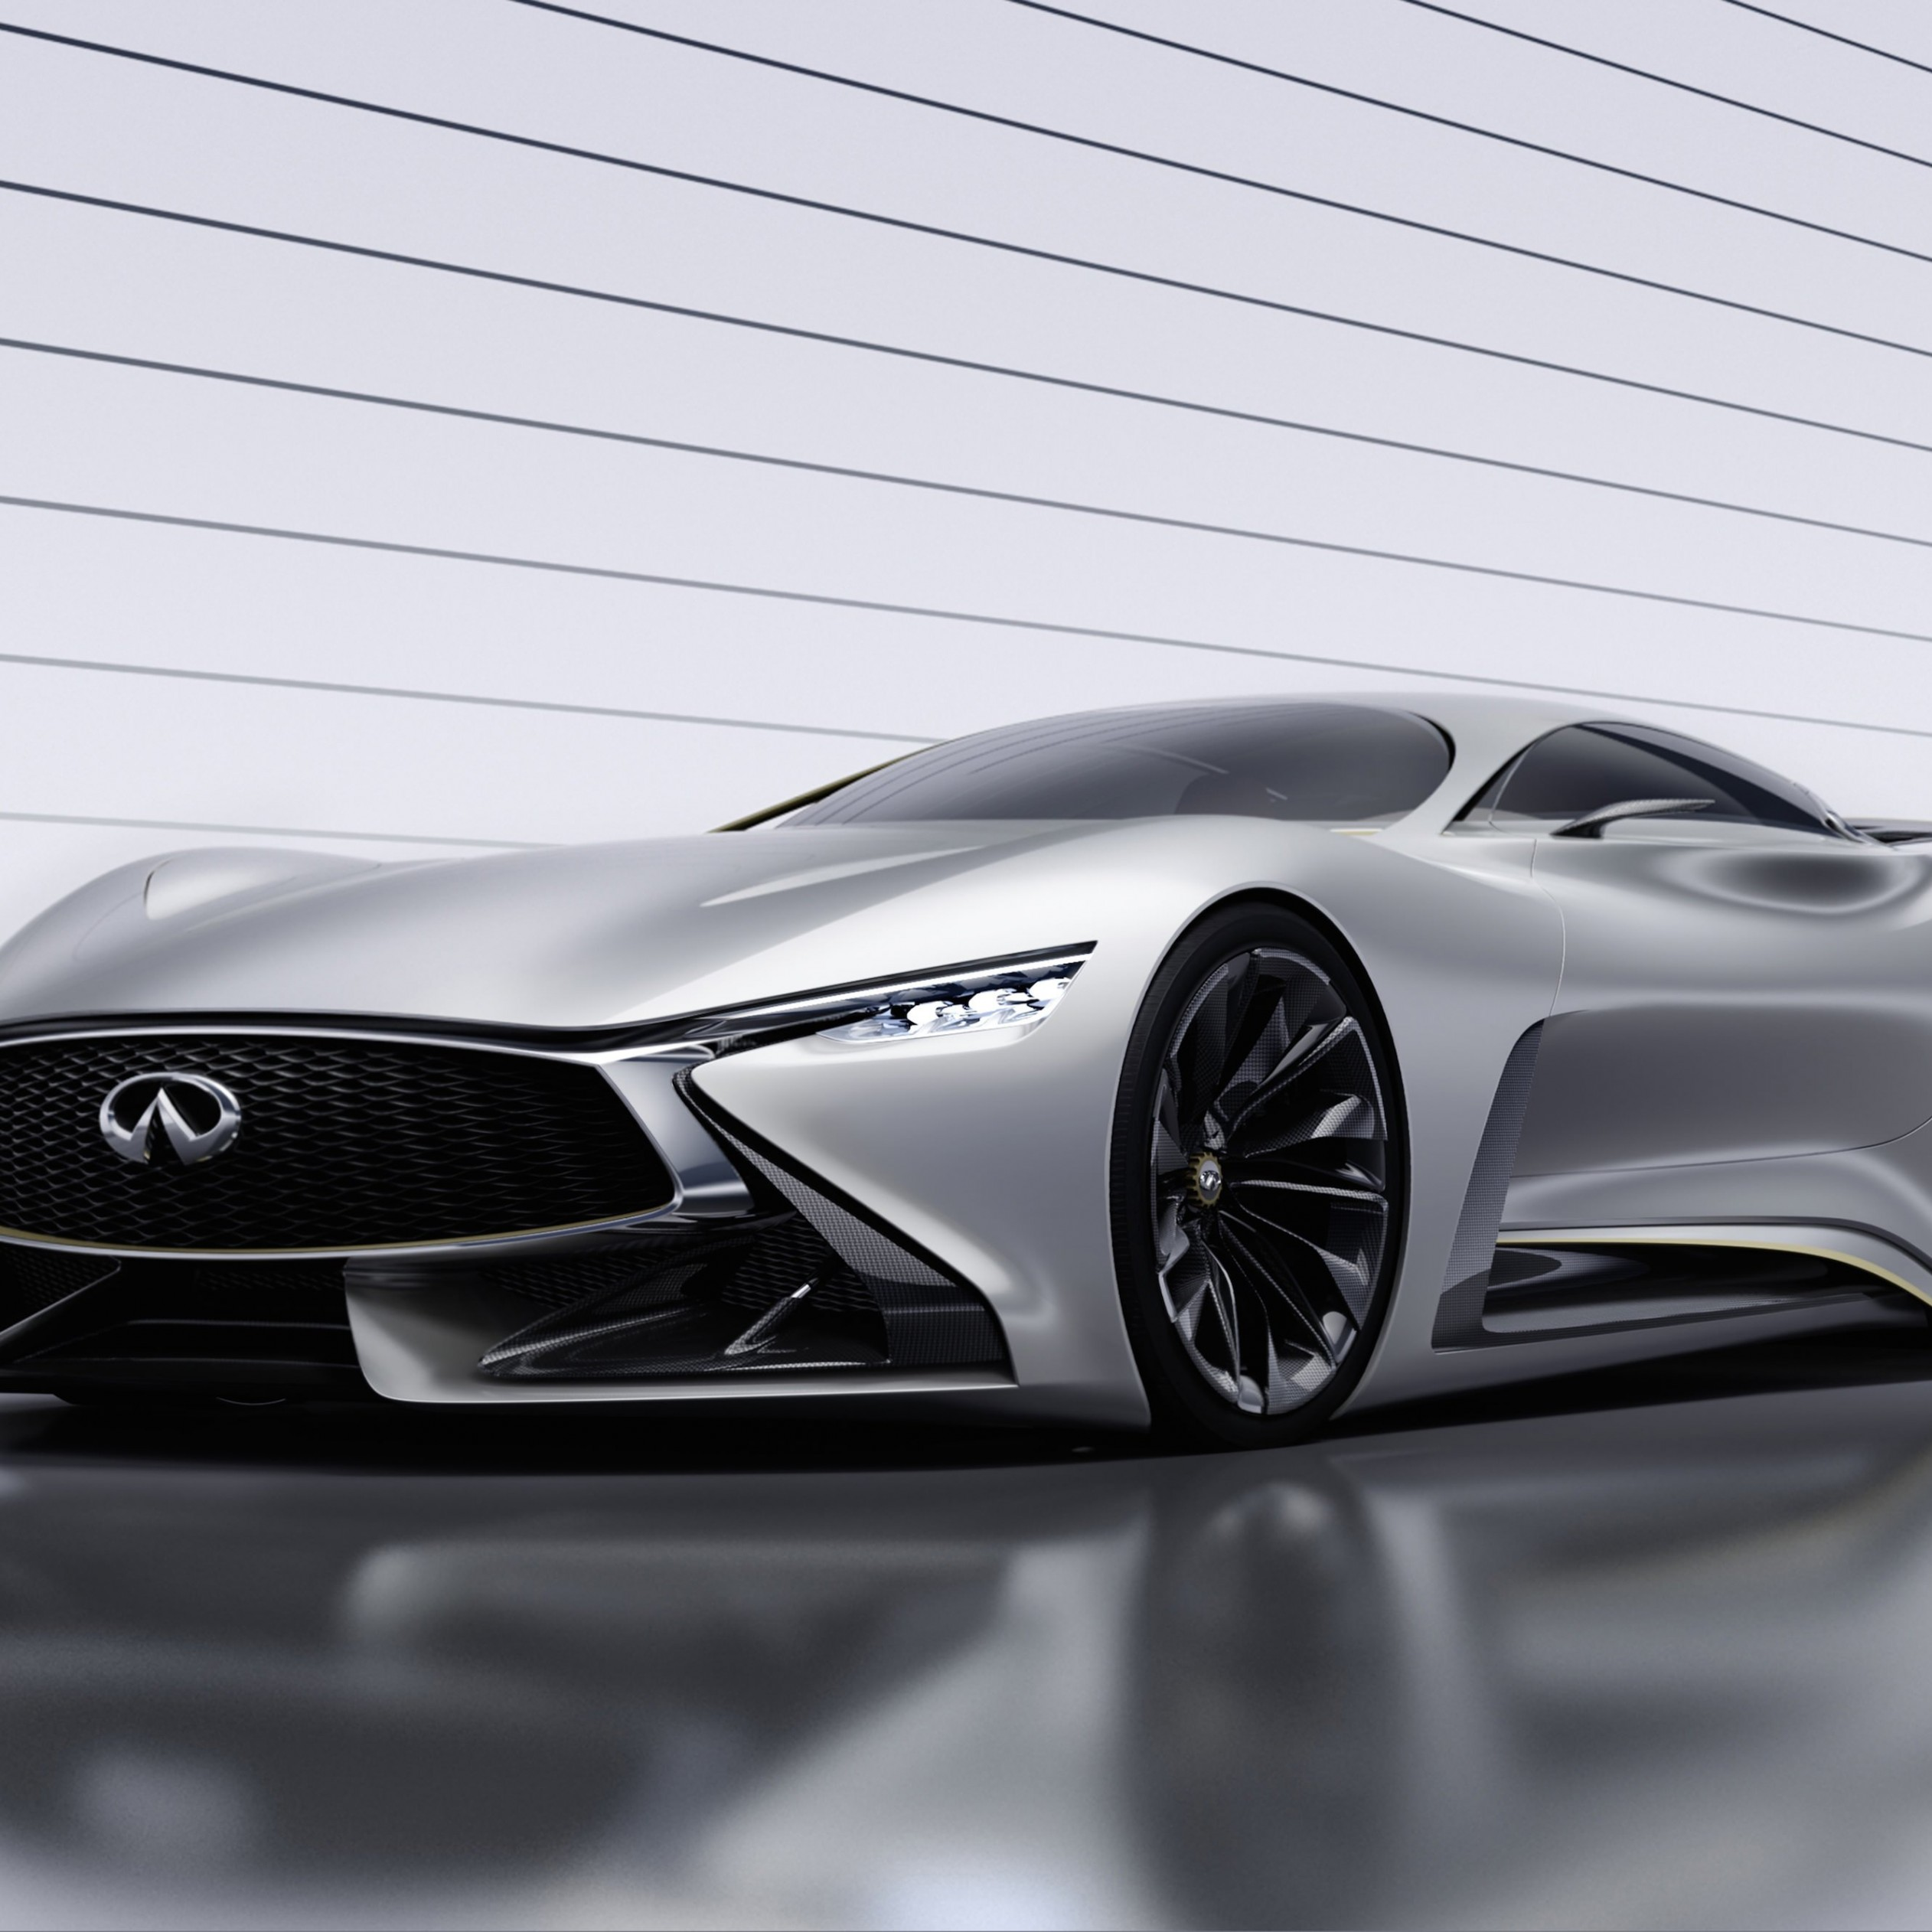 Infiniti Vision GT Concept Wallpaper for Apple iPad 3